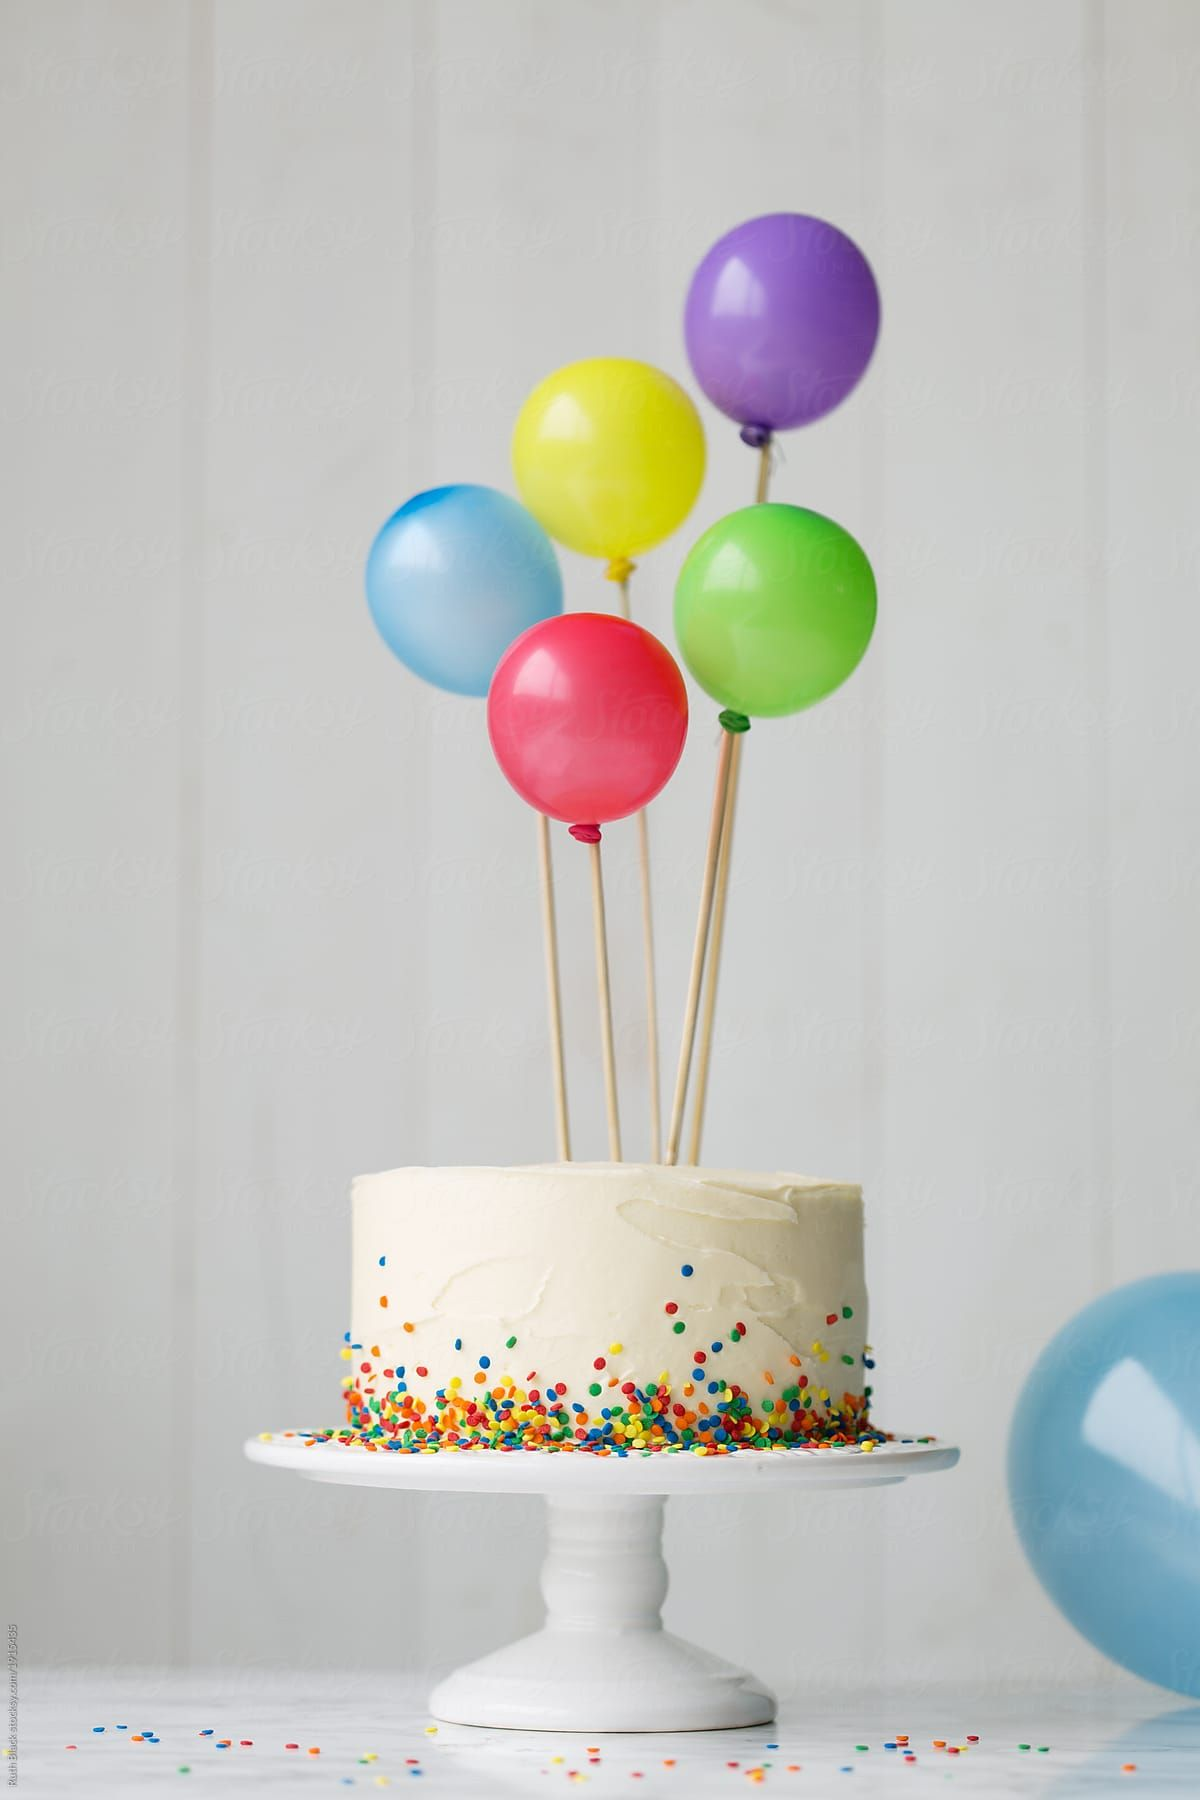 Sensational Birthday Cake Decorated With Colorful Balloons By Ruth Black For Personalised Birthday Cards Paralily Jamesorg